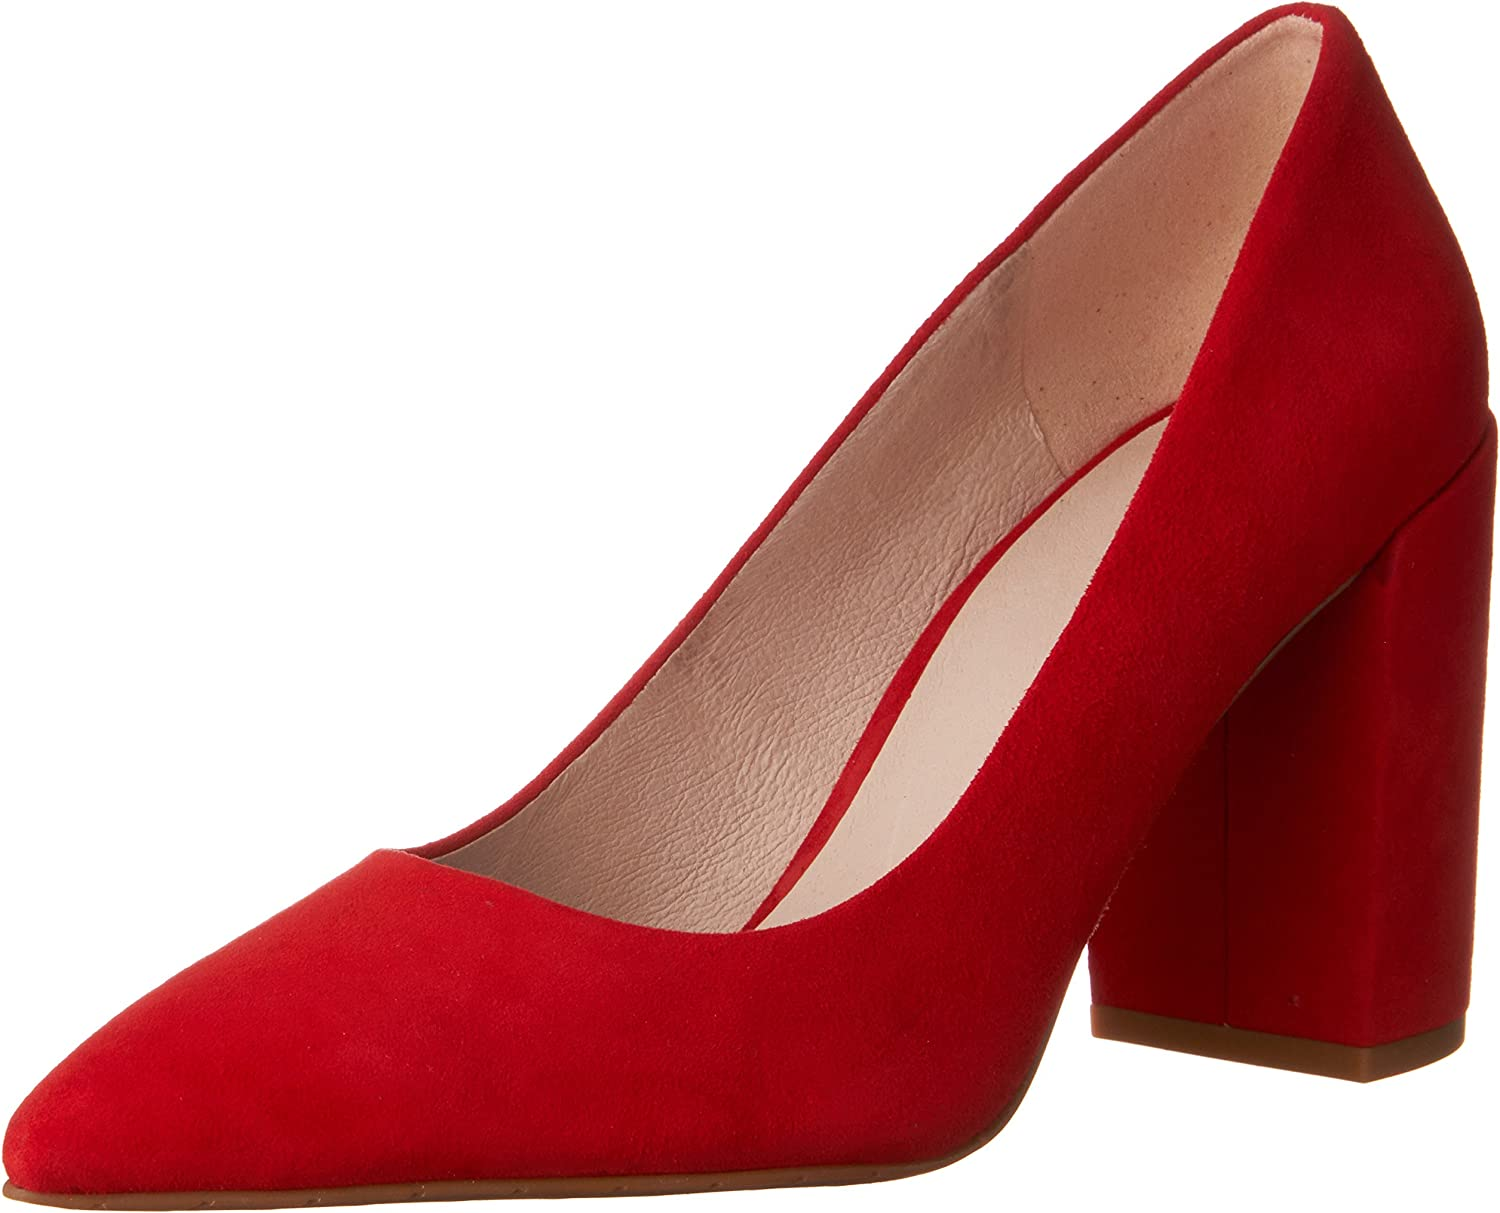 Kenneth Cole New York Womens Margaux Pumps